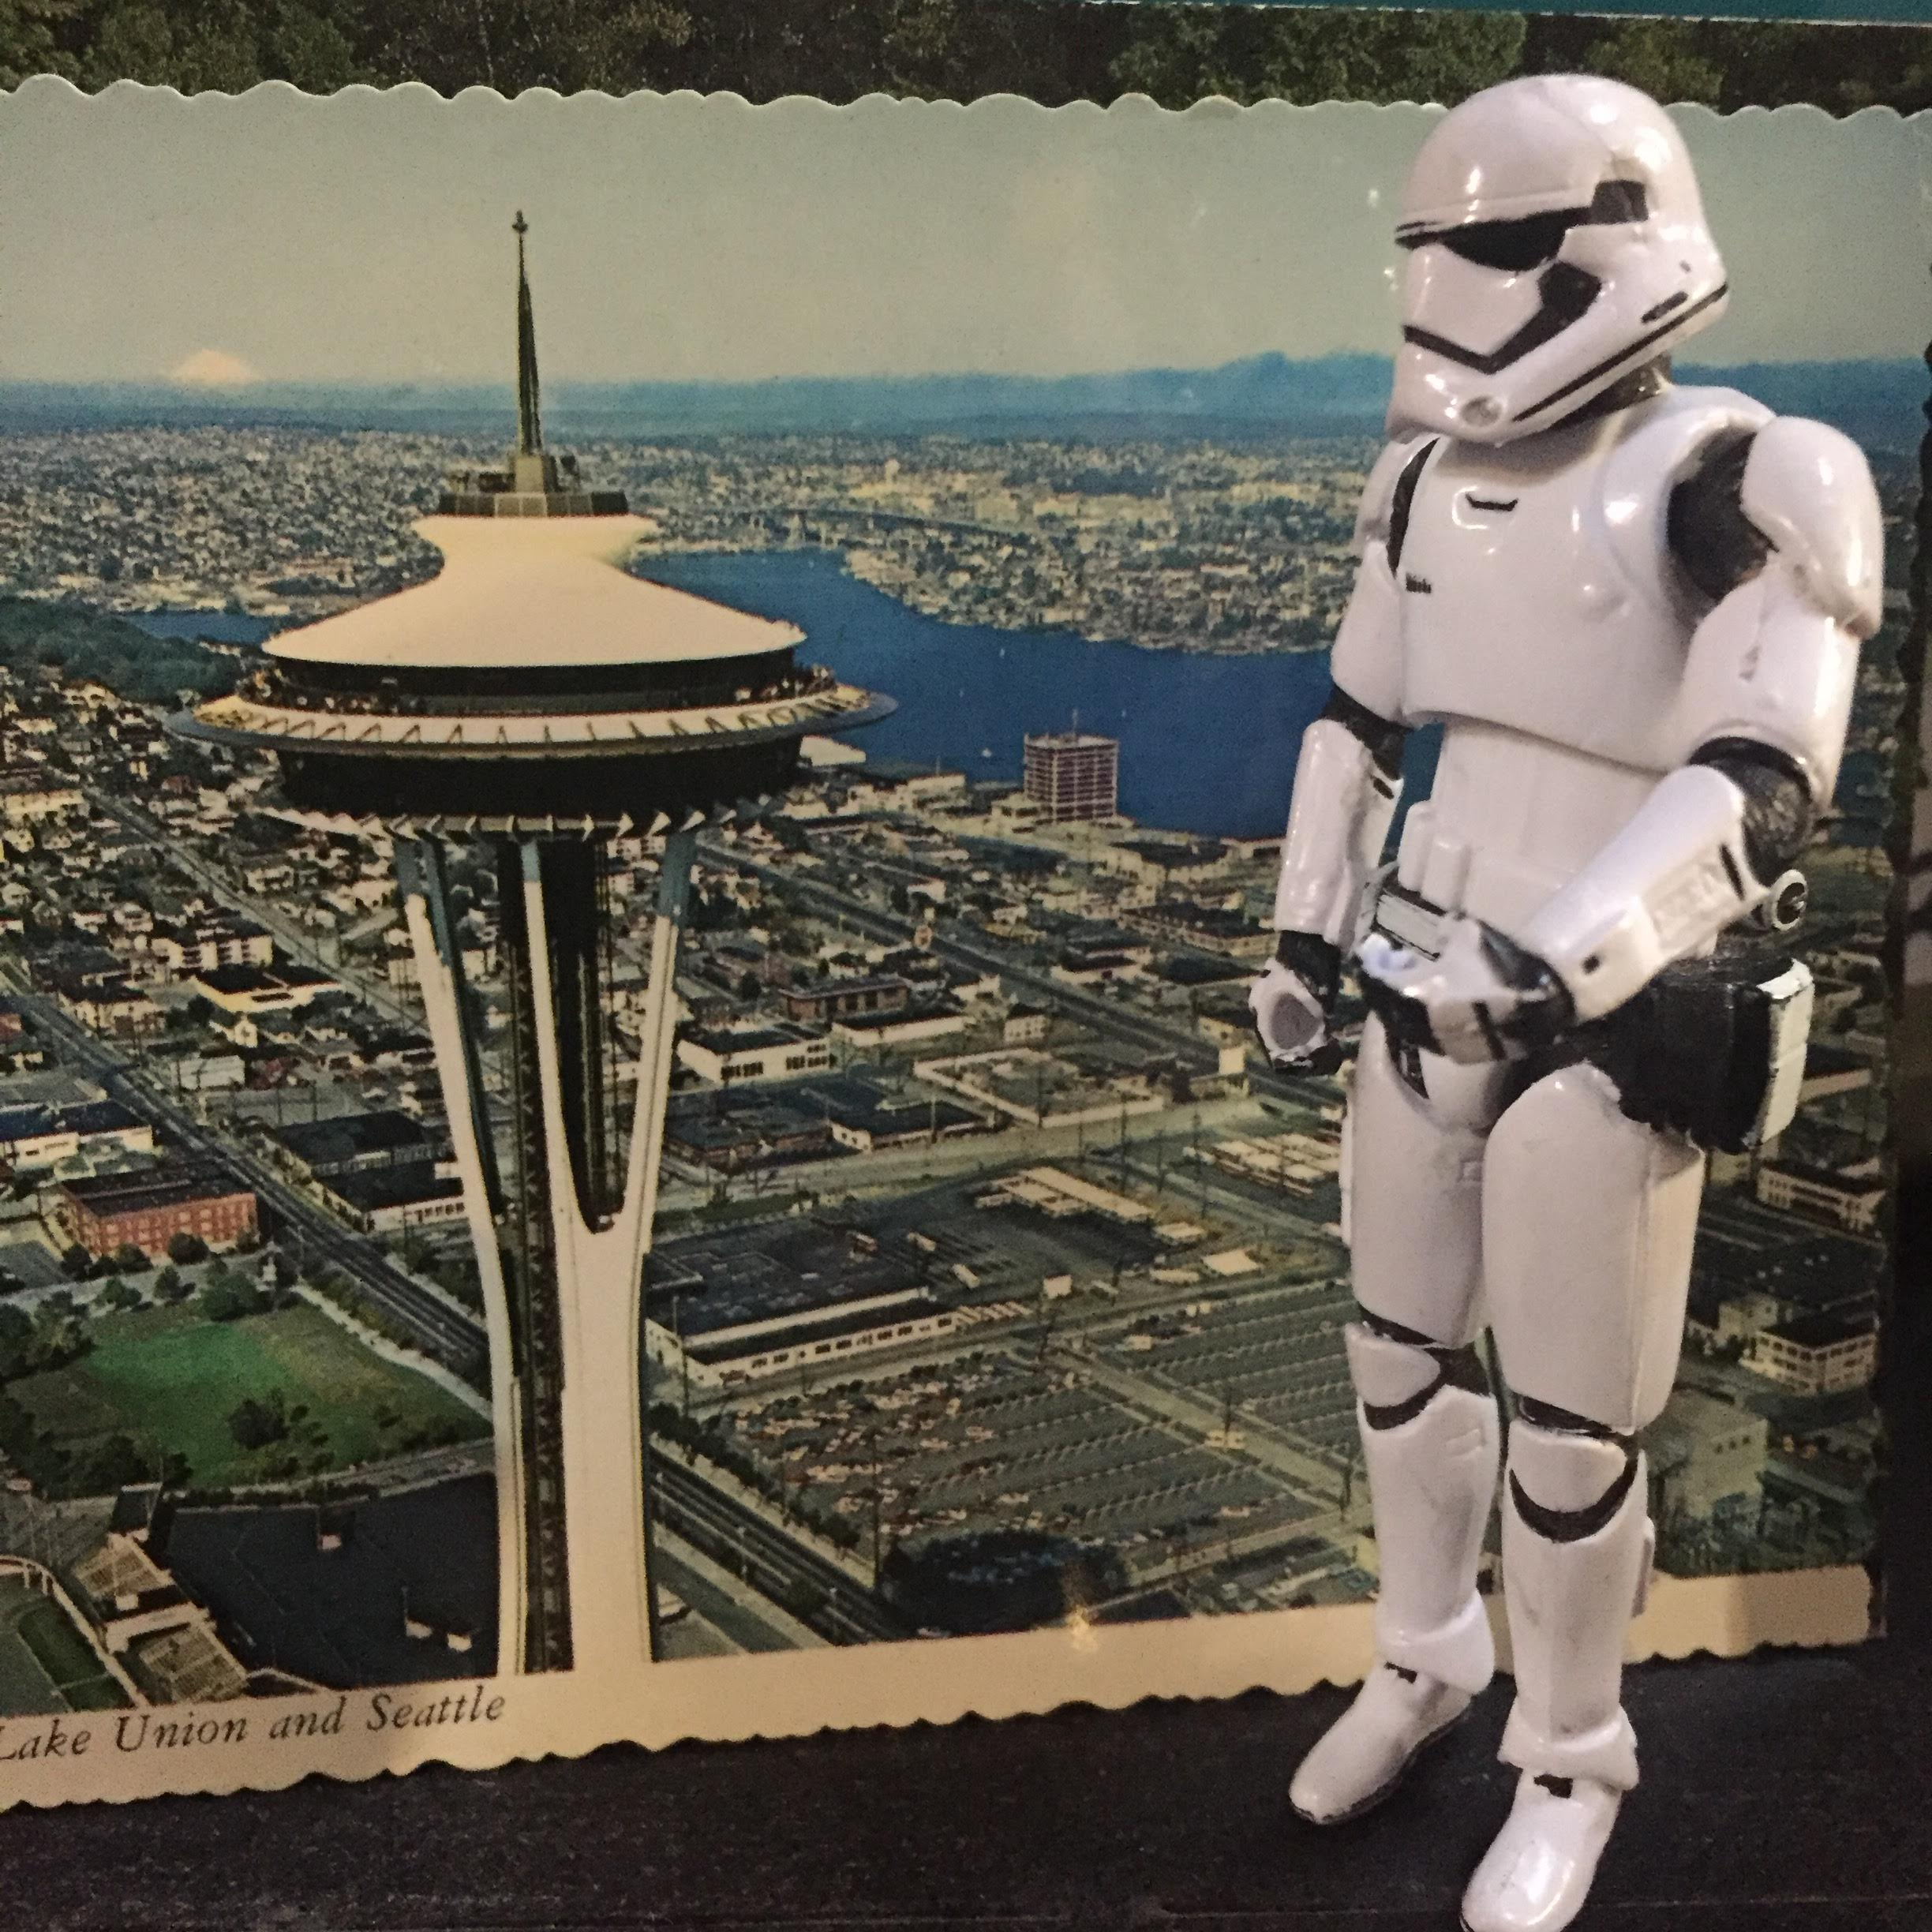 stormtrooper space needle summer opp asheville